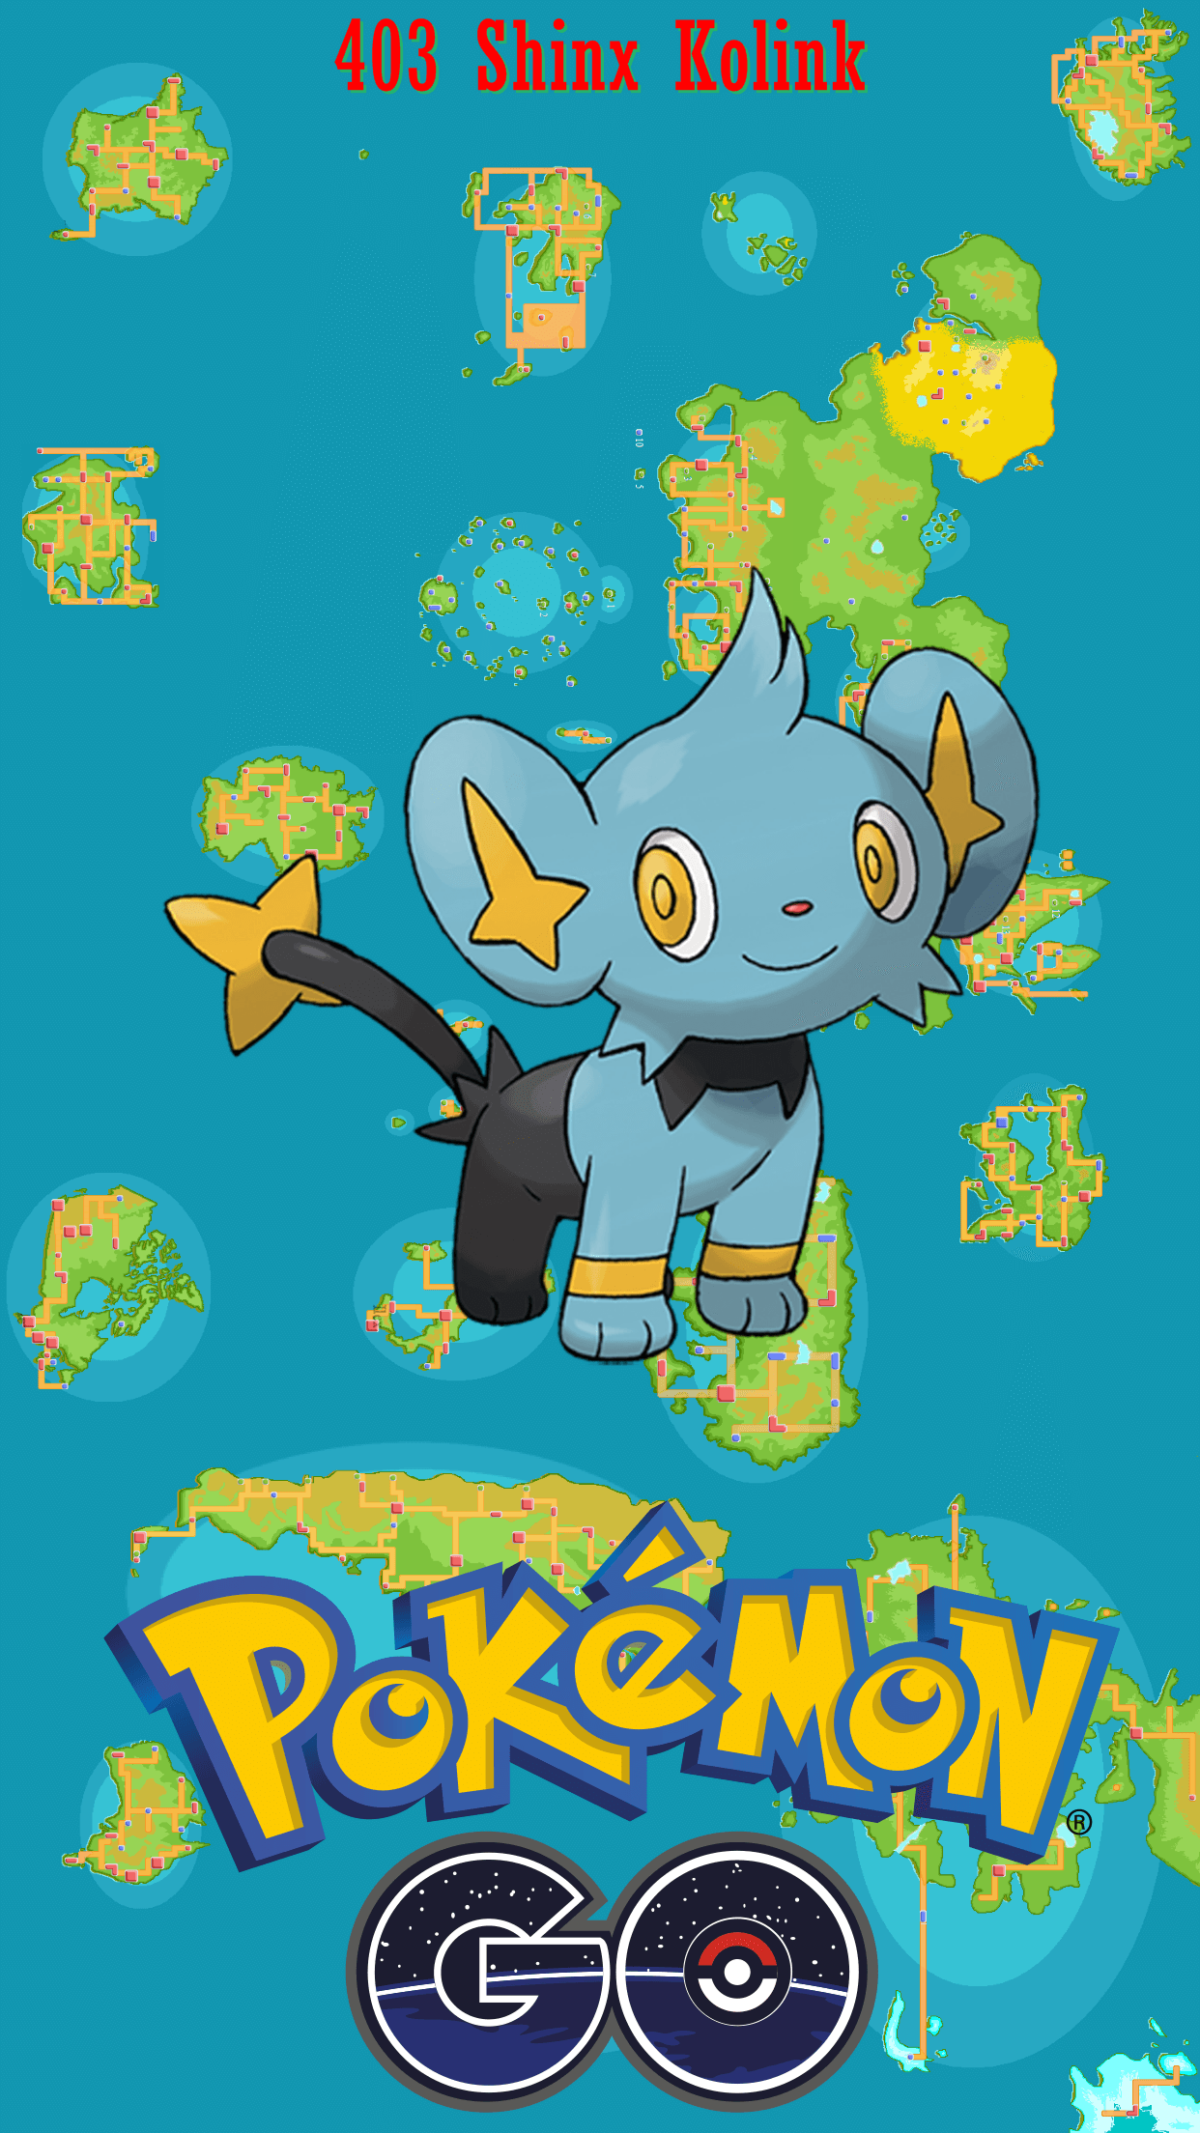 403 Street Map Shinx Kolink | Wallpaper